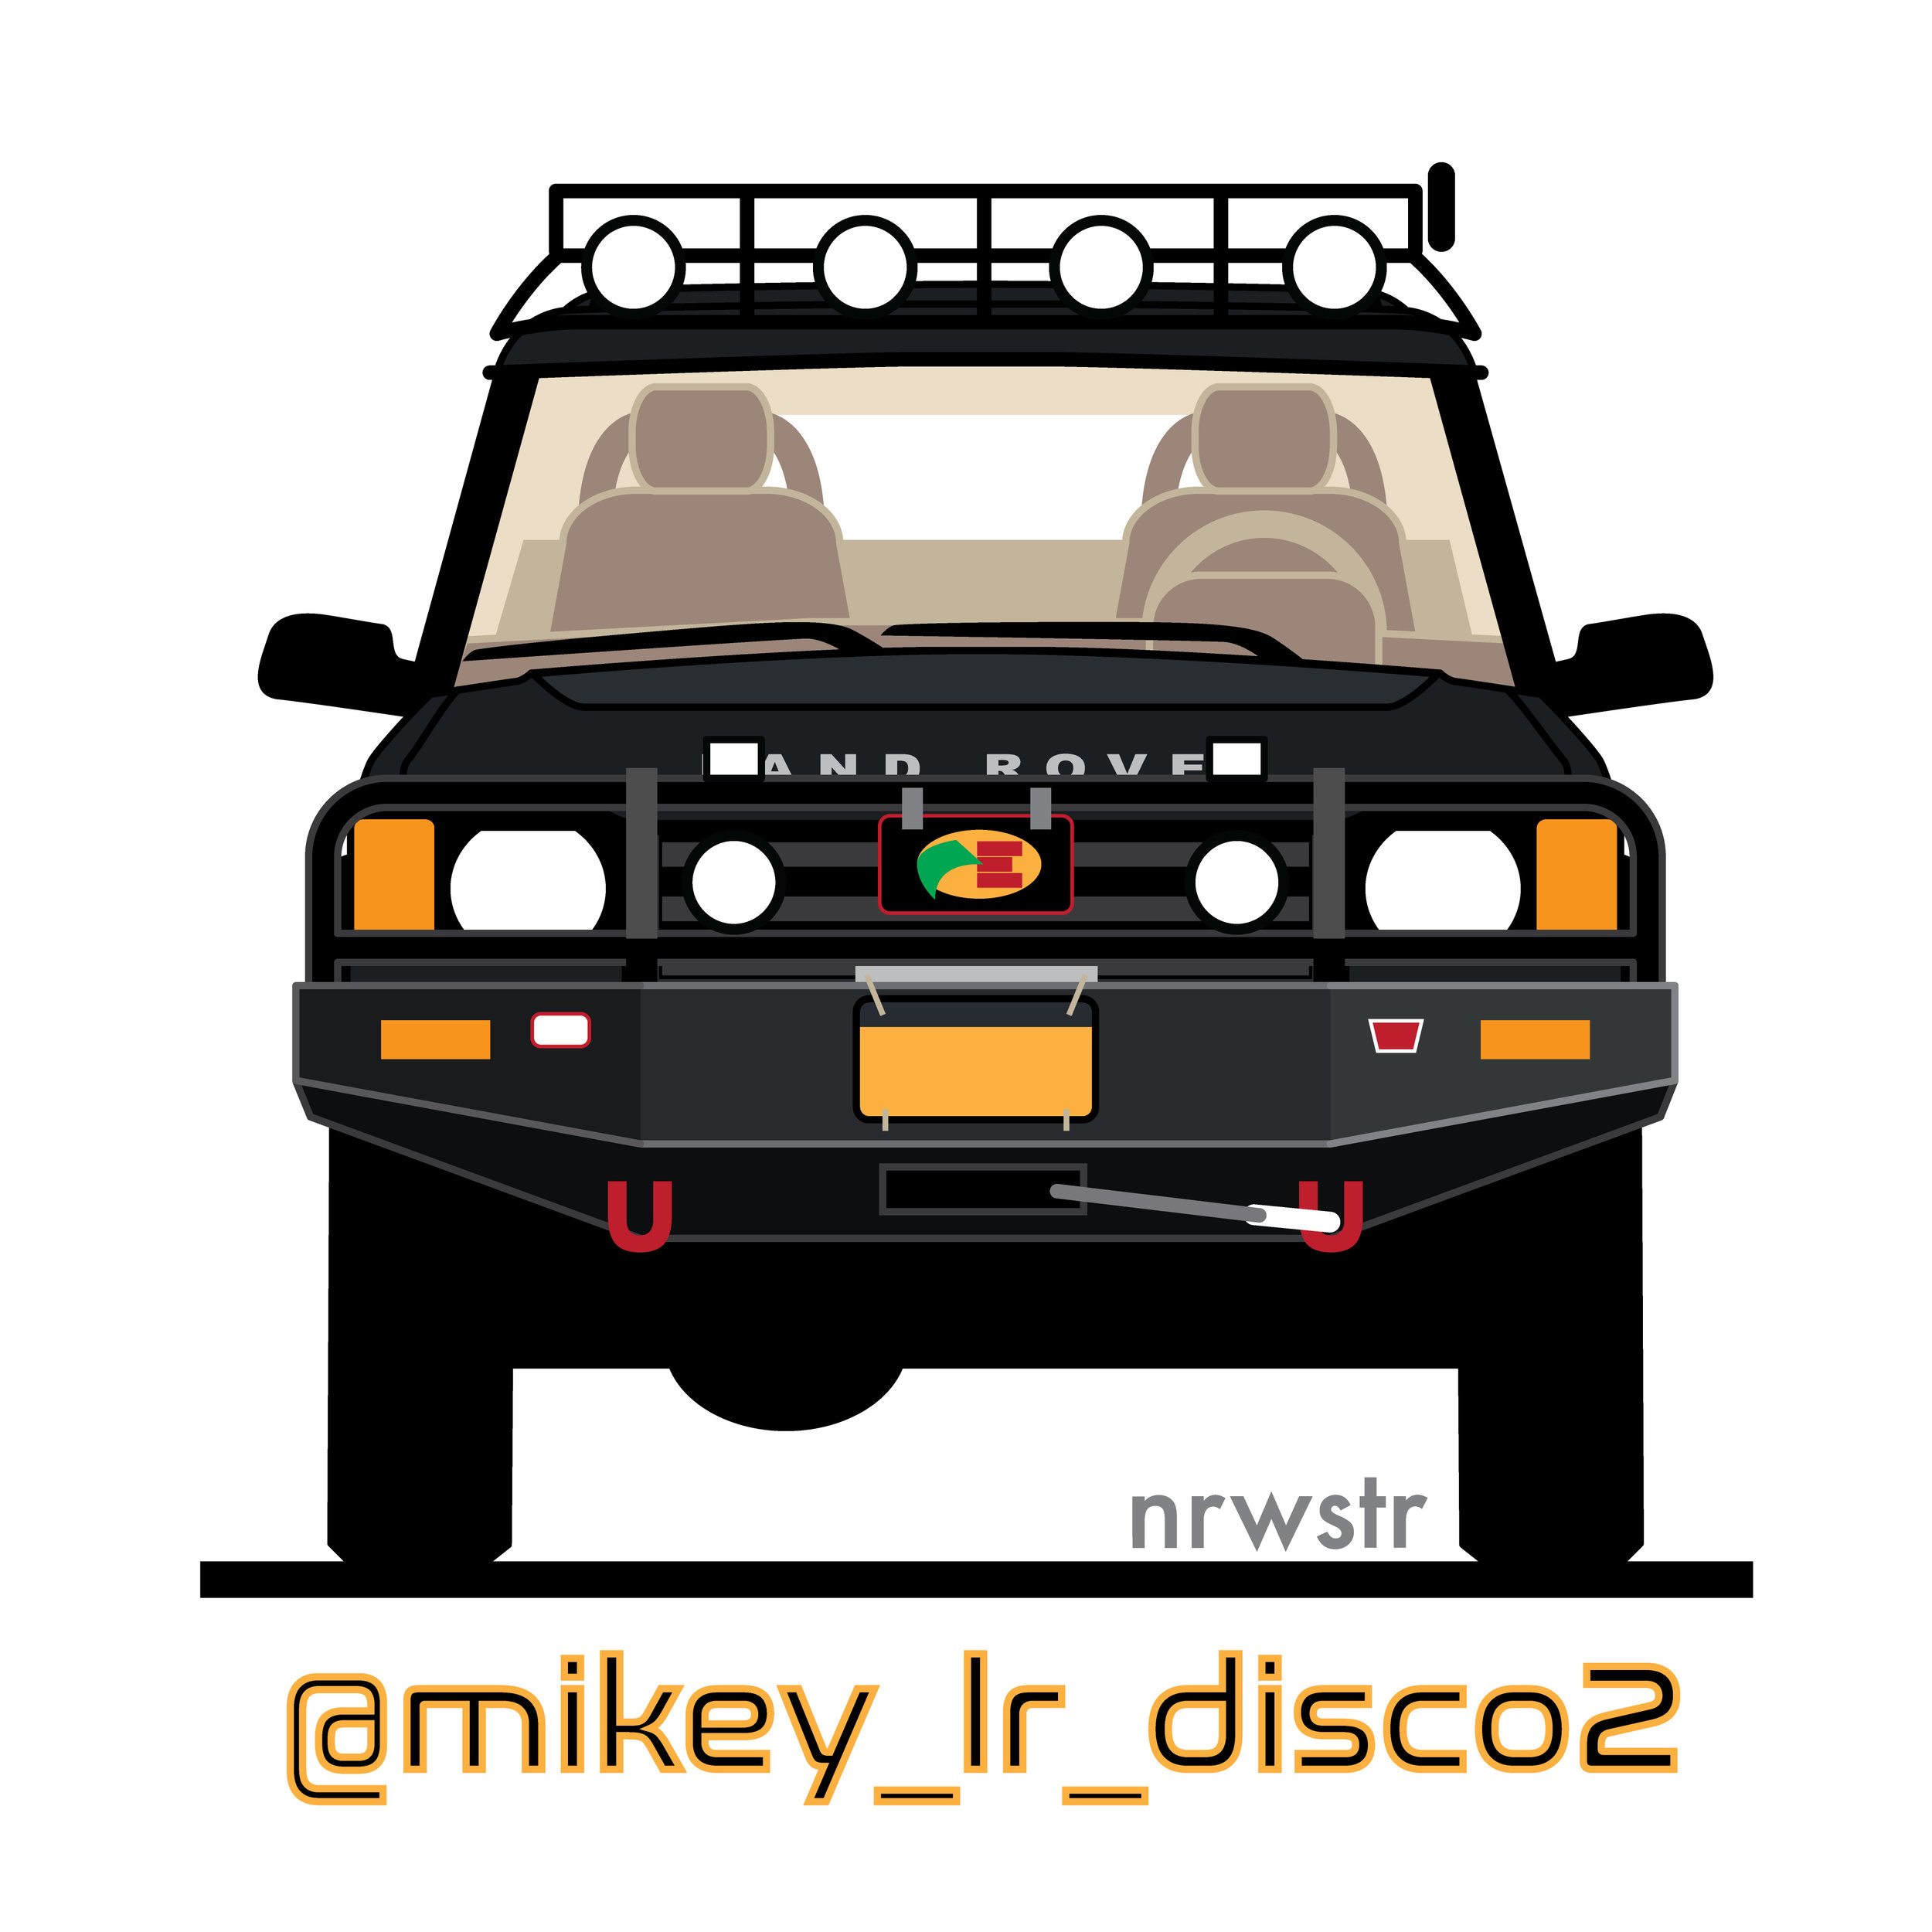 mikey_lr_disco2-discovery-front-view.jpg